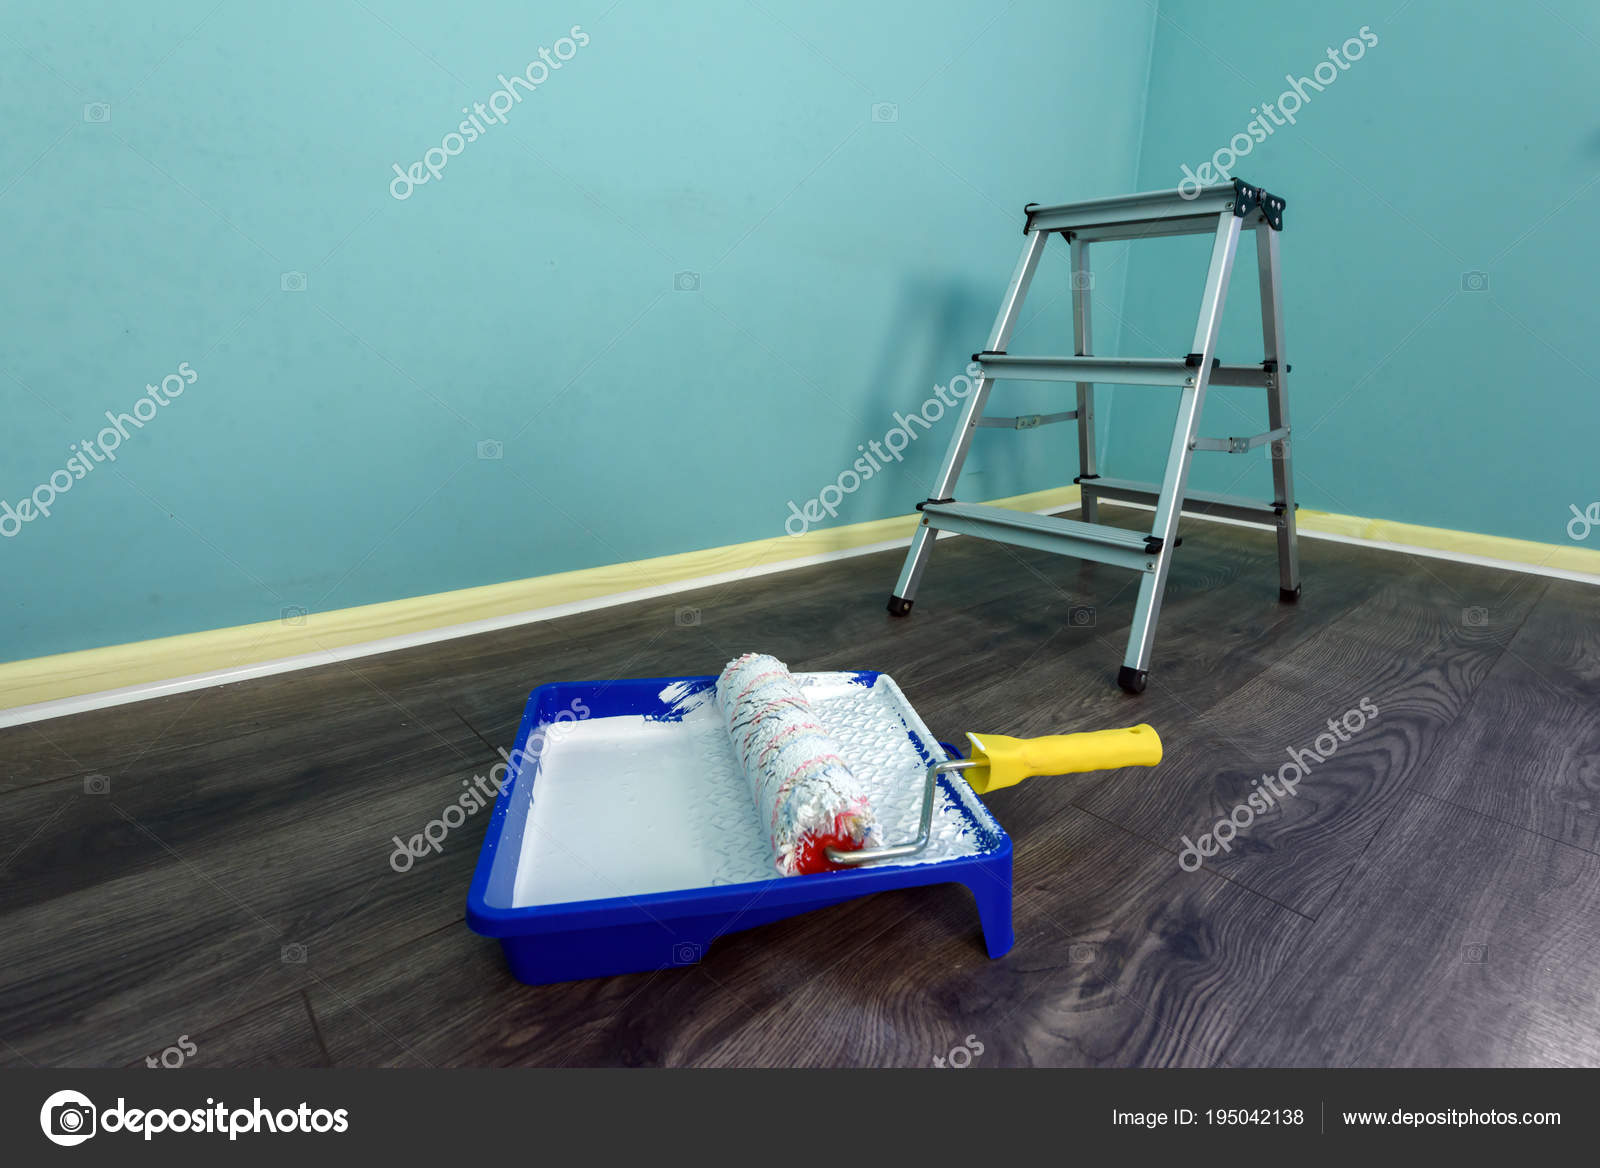 Painting Tools On Wall Background Stock Photo C Ivankmit 195042138